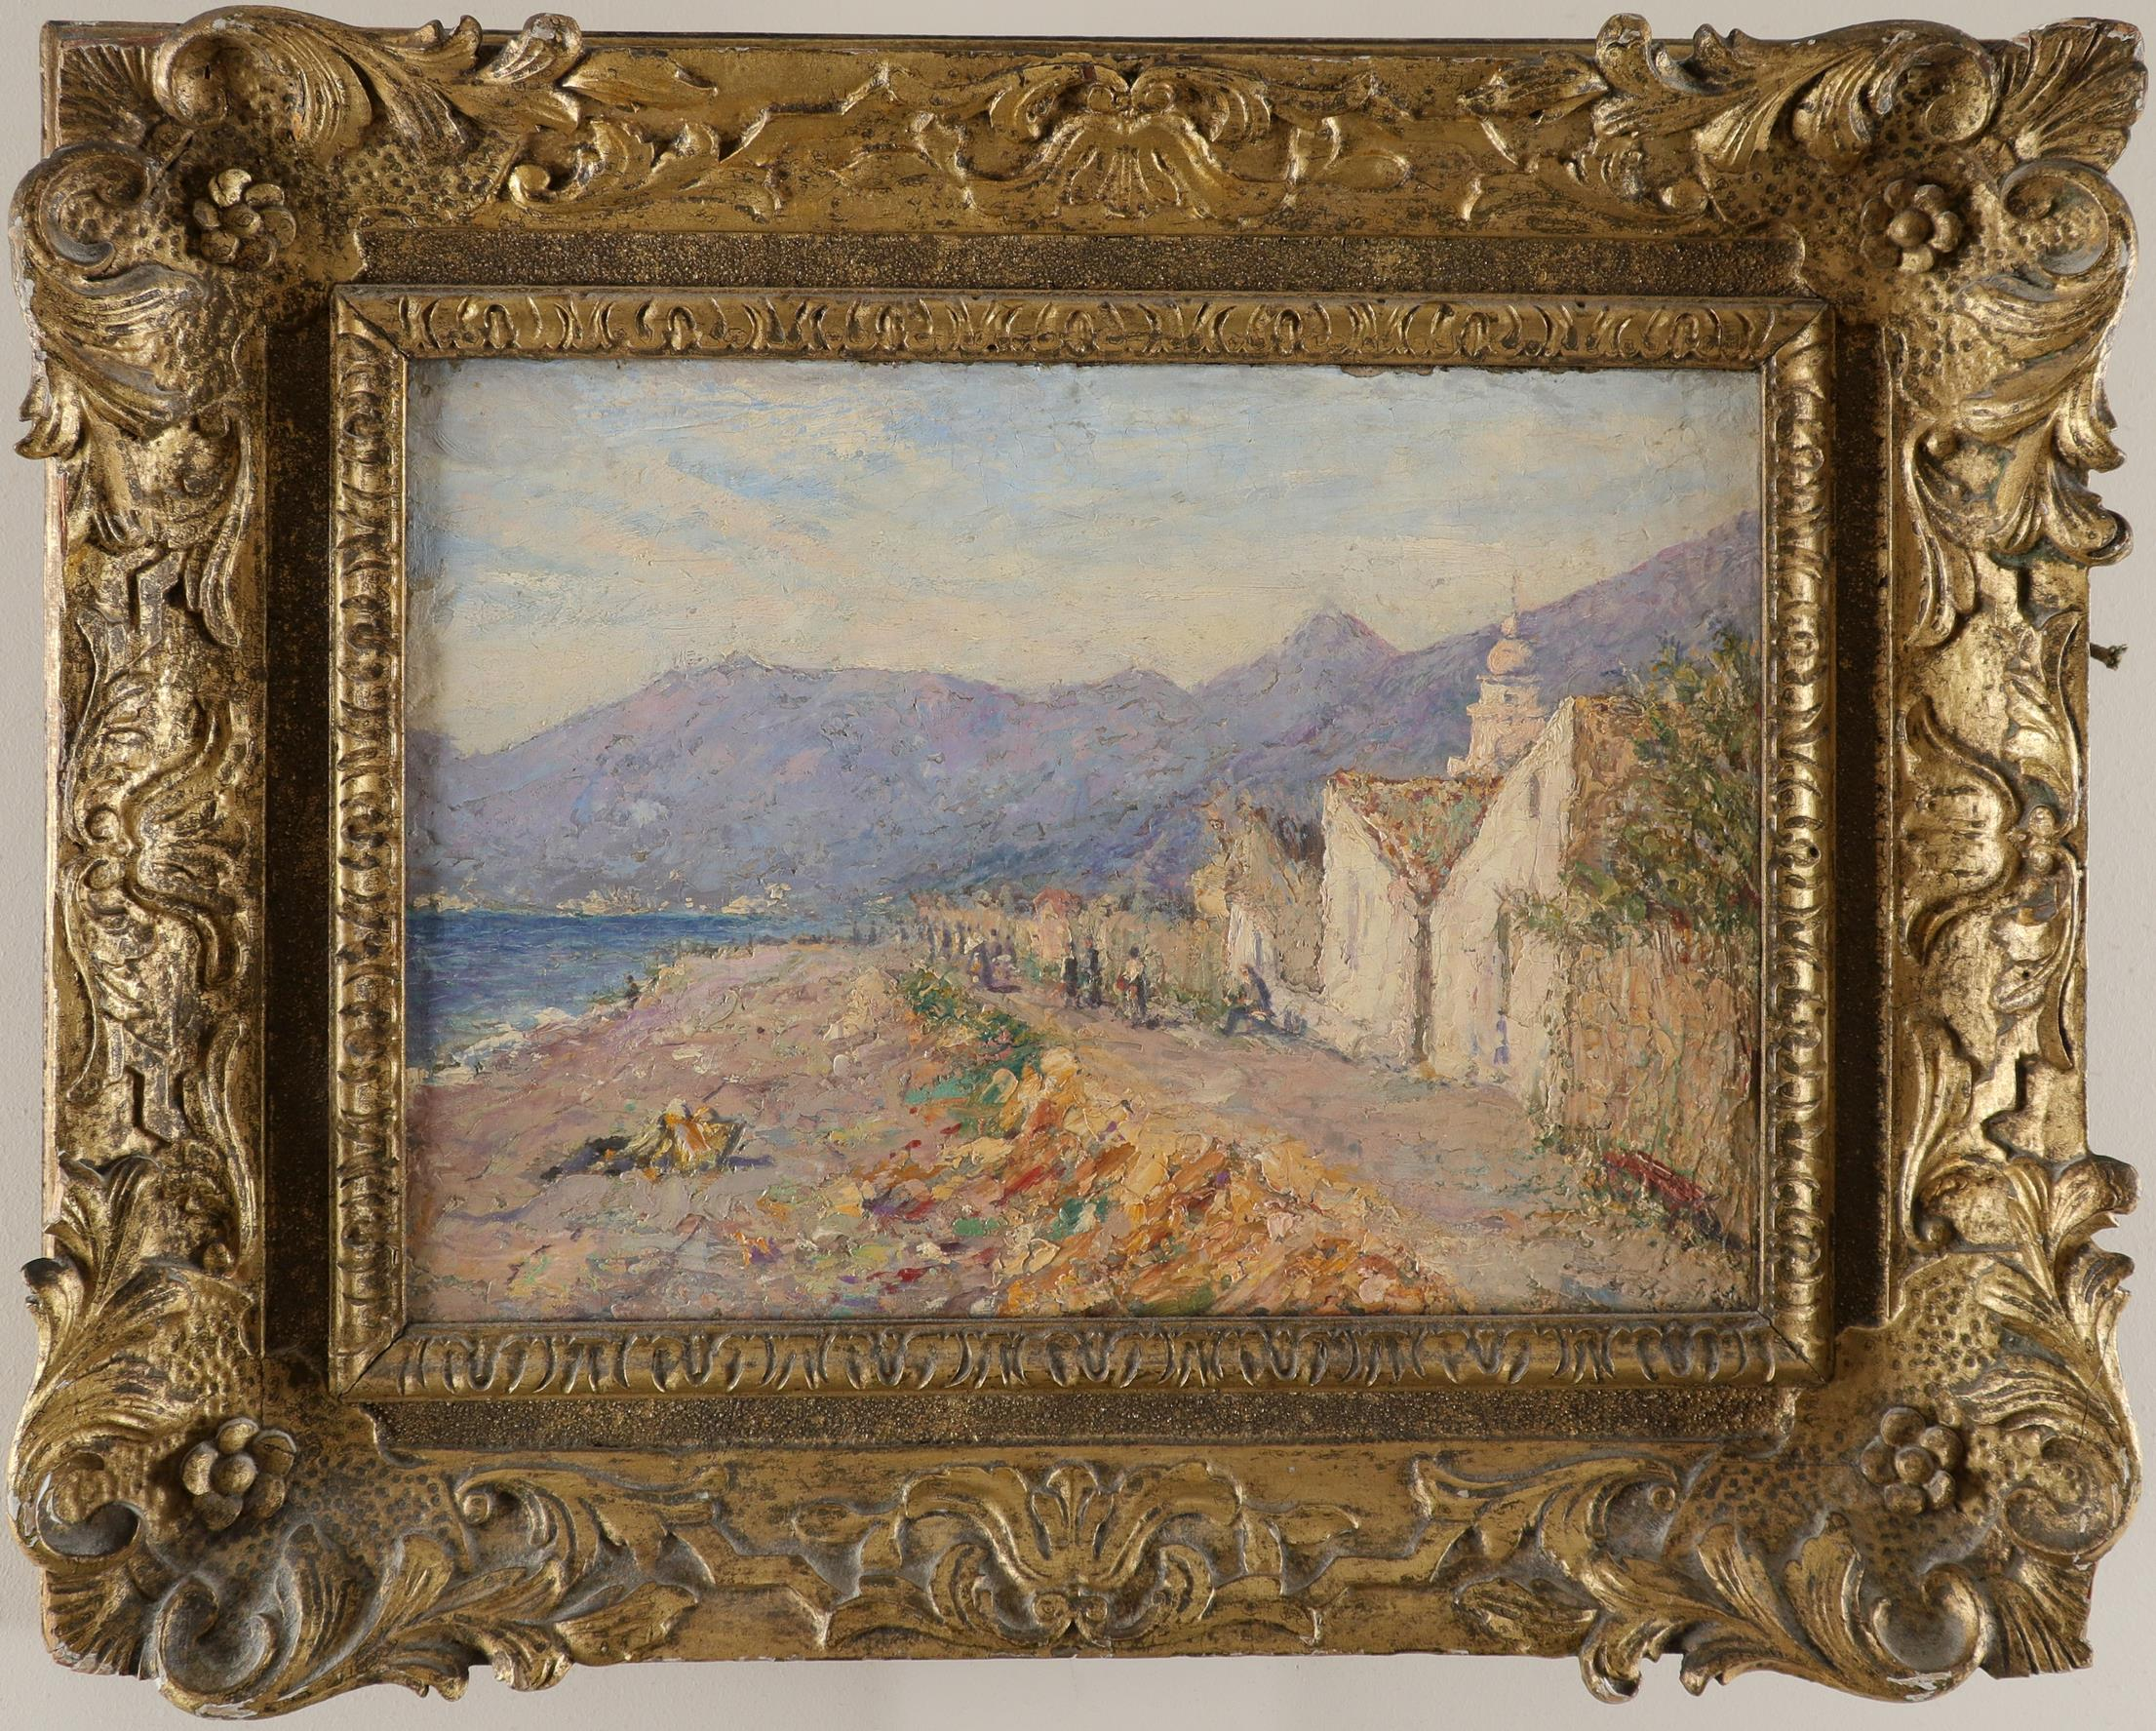 Continental School 20th Century A view of Kotor, Montenegro Oil on canvas 25.6 x 35.7cm - Image 2 of 3